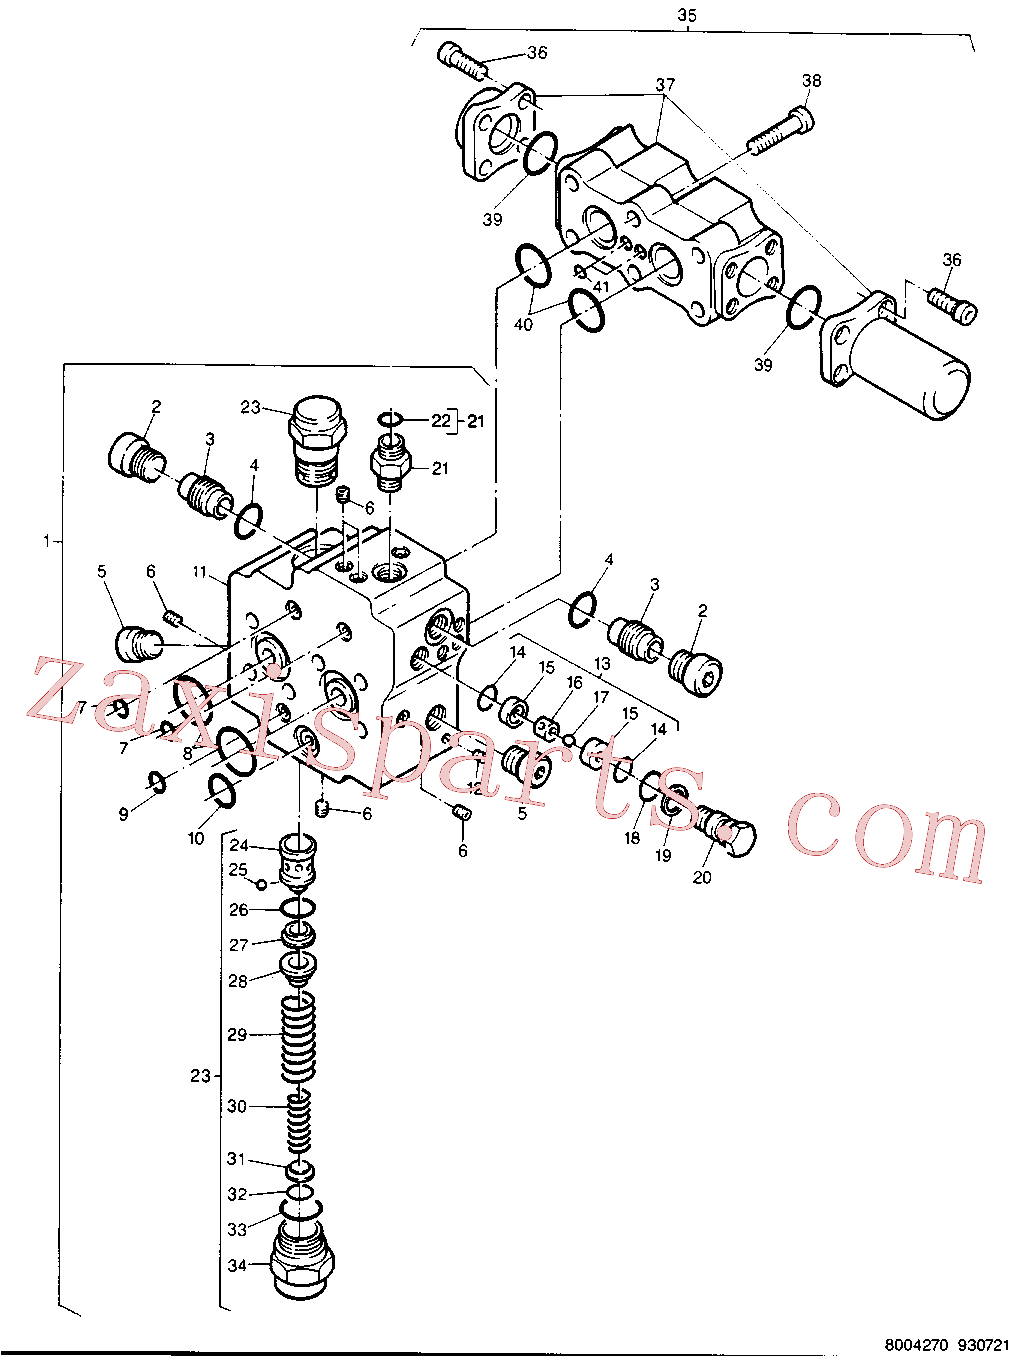 CAT 8U-2189 for 224B Excavator(EXC) chassis & undercarriage 8U-2212 Assembly